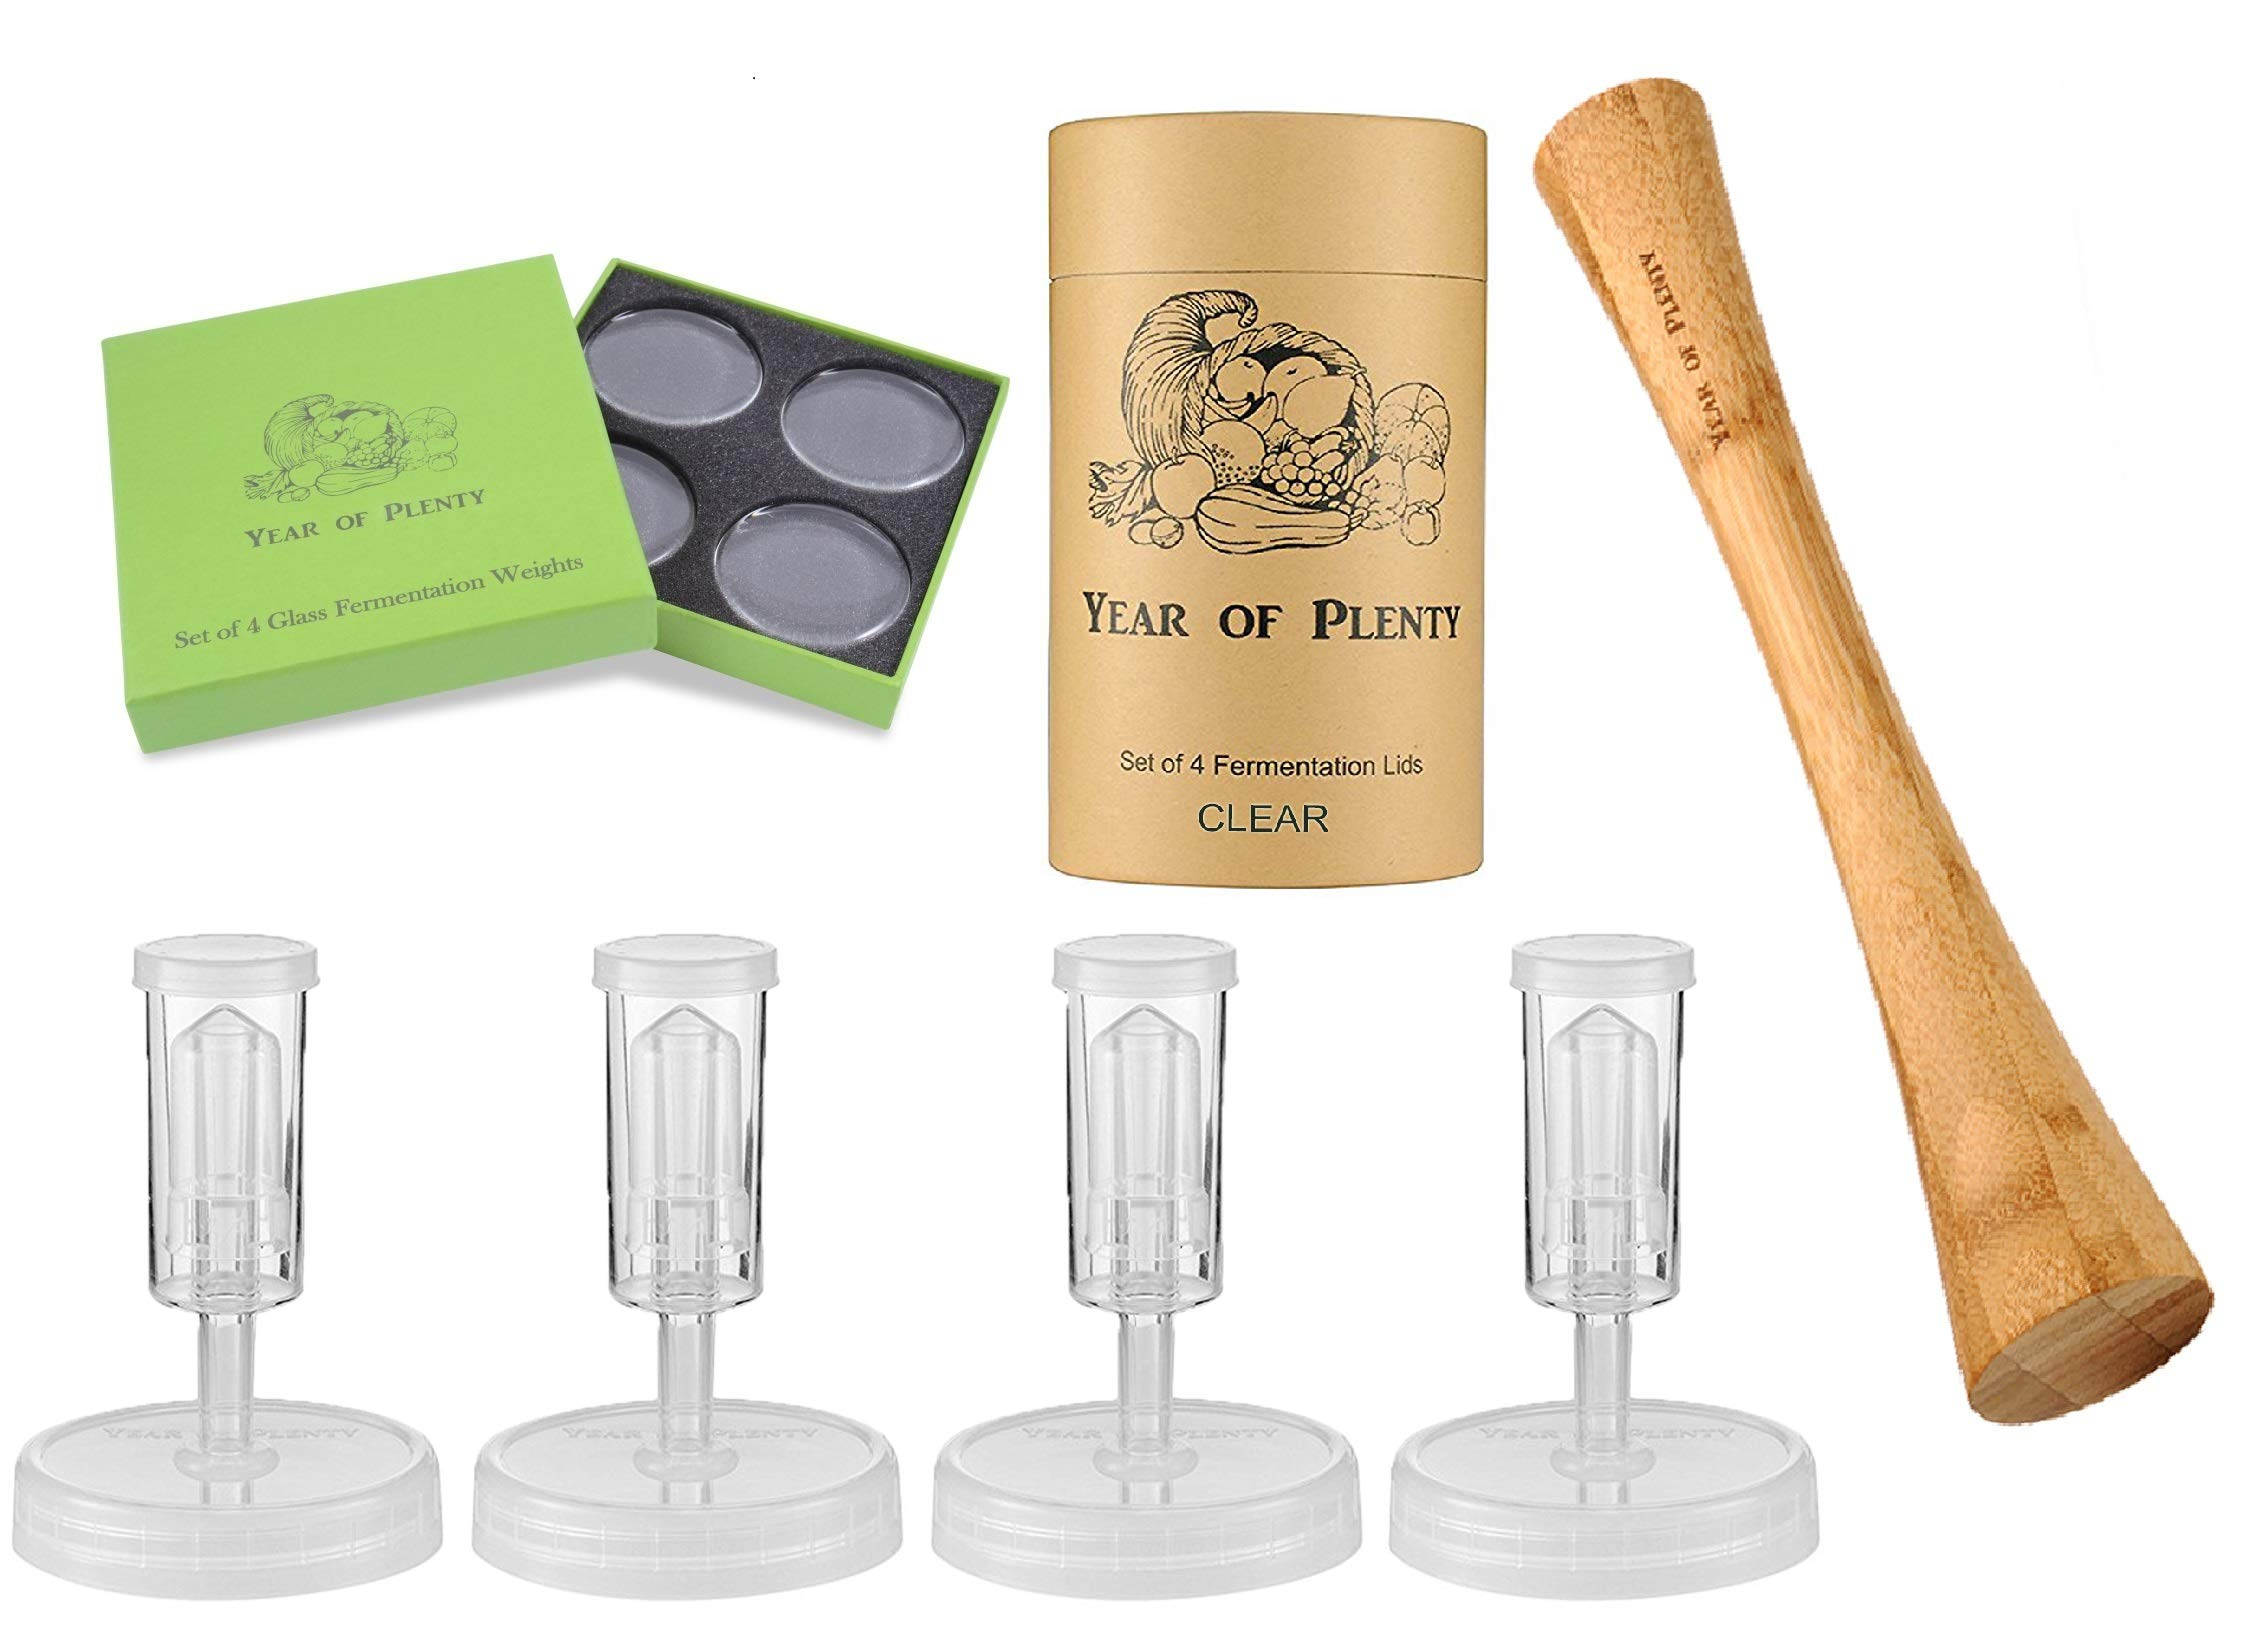 Year of Plenty Complete Fermenting Kit - Includes 4 Clear Fermentation Lids, 4 Fermentation Weights, One 12-inch Bamboo Cabbage Tamper (Clear) by Year of Plenty